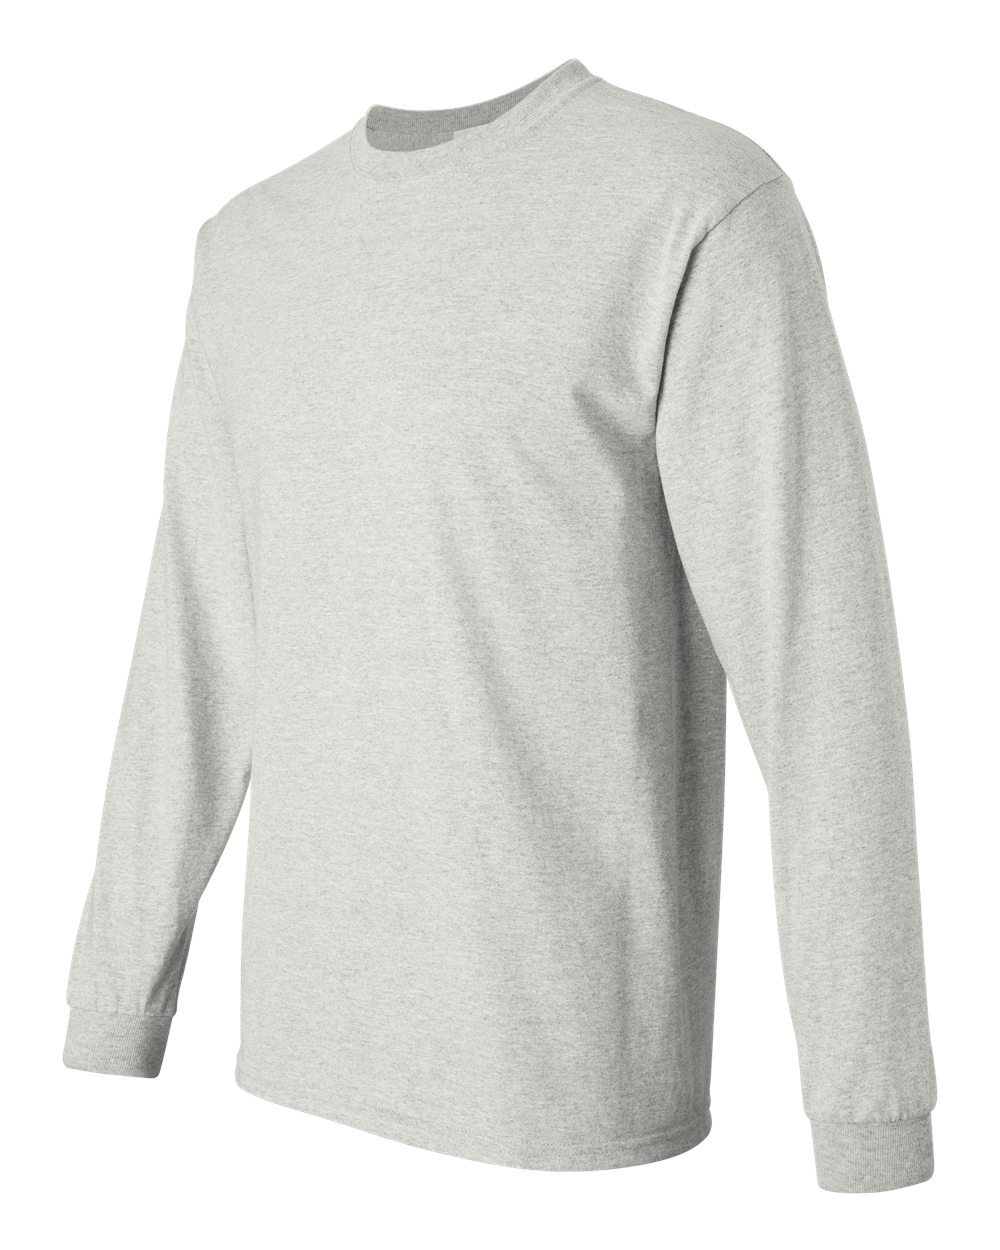 Gildan-Men-039-s-Ultra-Cotton-6-oz-Long-Sleeve-T-Shirt-G240-S-5XL thumbnail 4